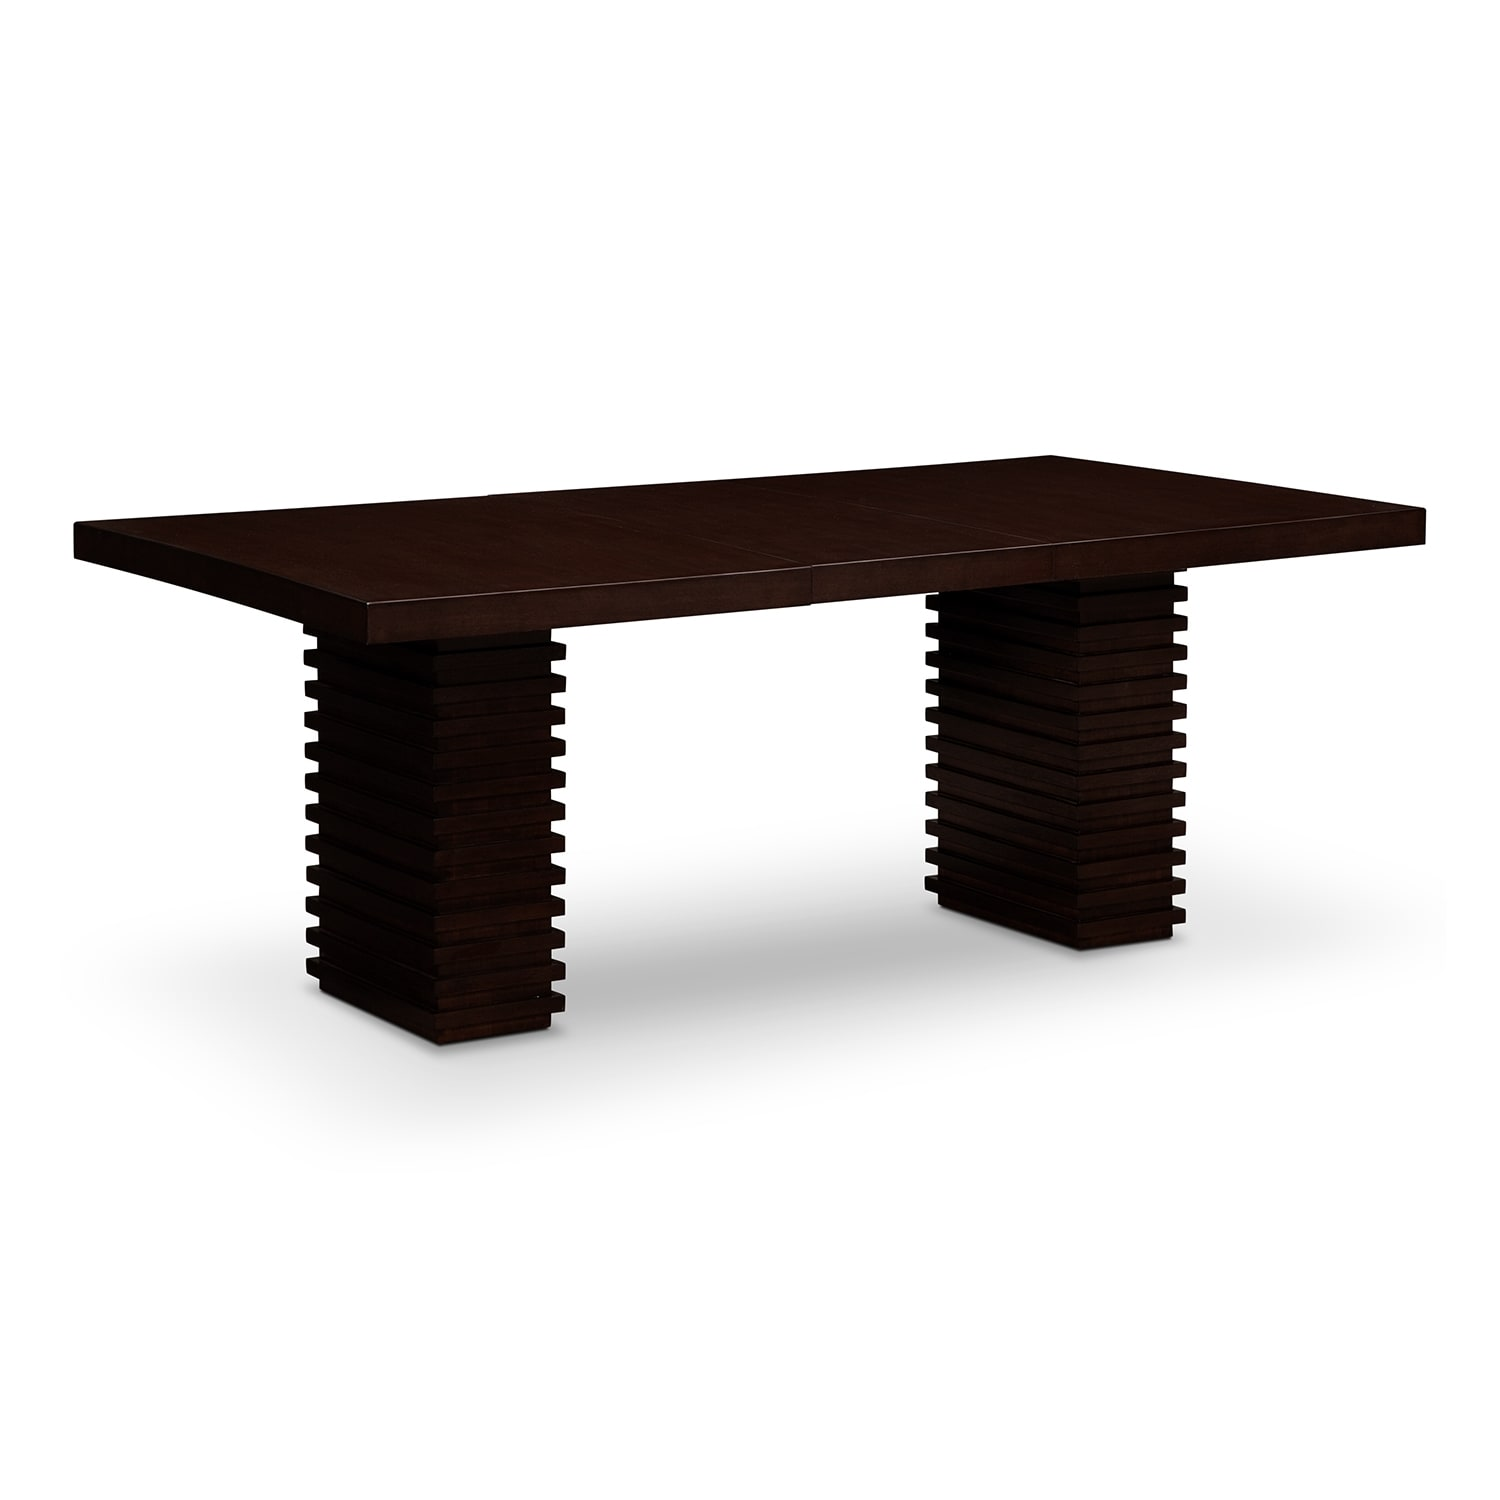 [Paragon Dining Table]